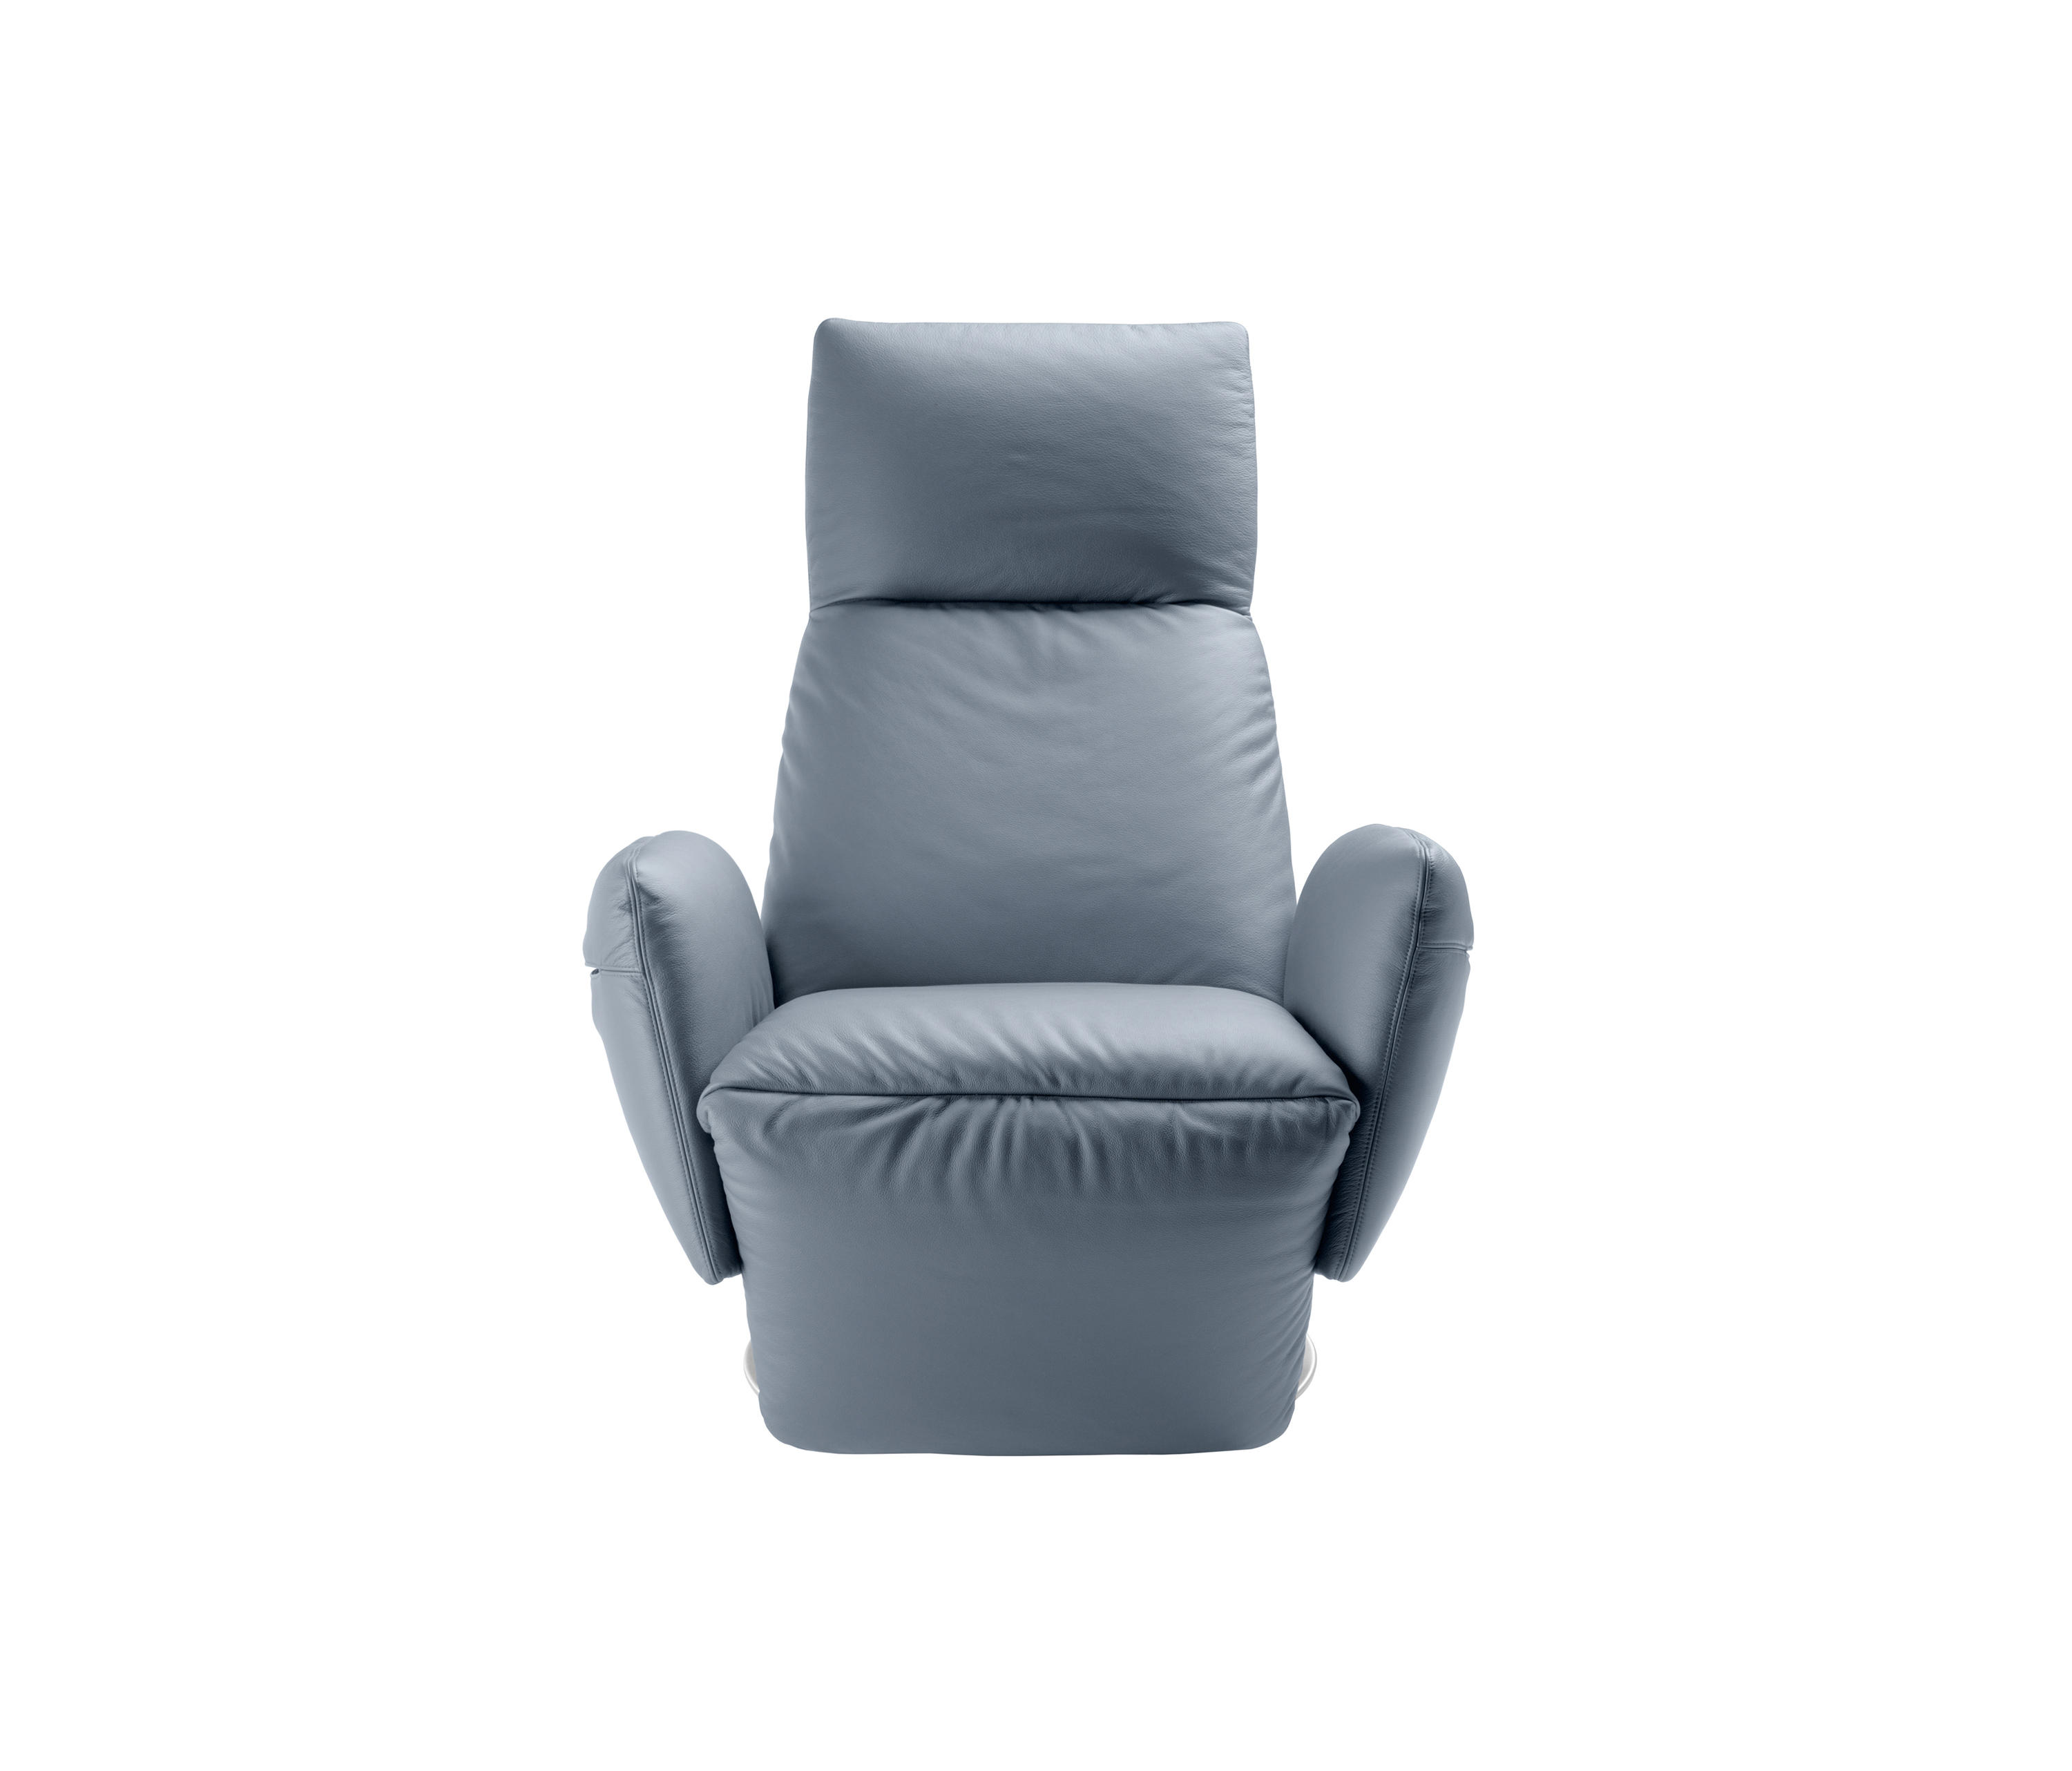 Poltrona Recliner Pillow Armchairs From Poltrona Frau Architonic